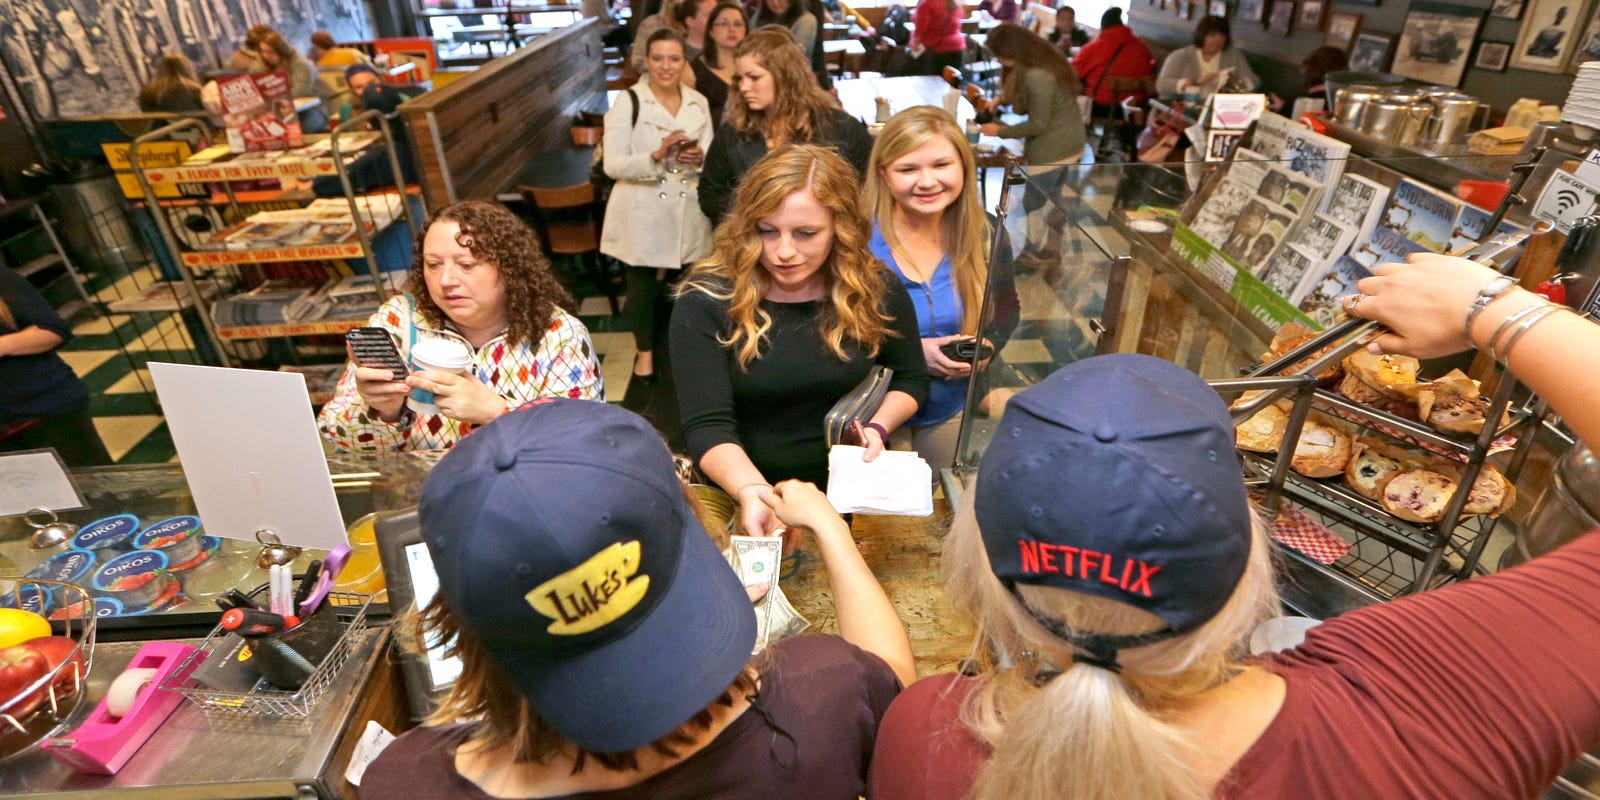 c6673aaefdd96  Gilmore Girls  fans pour into coffee shops